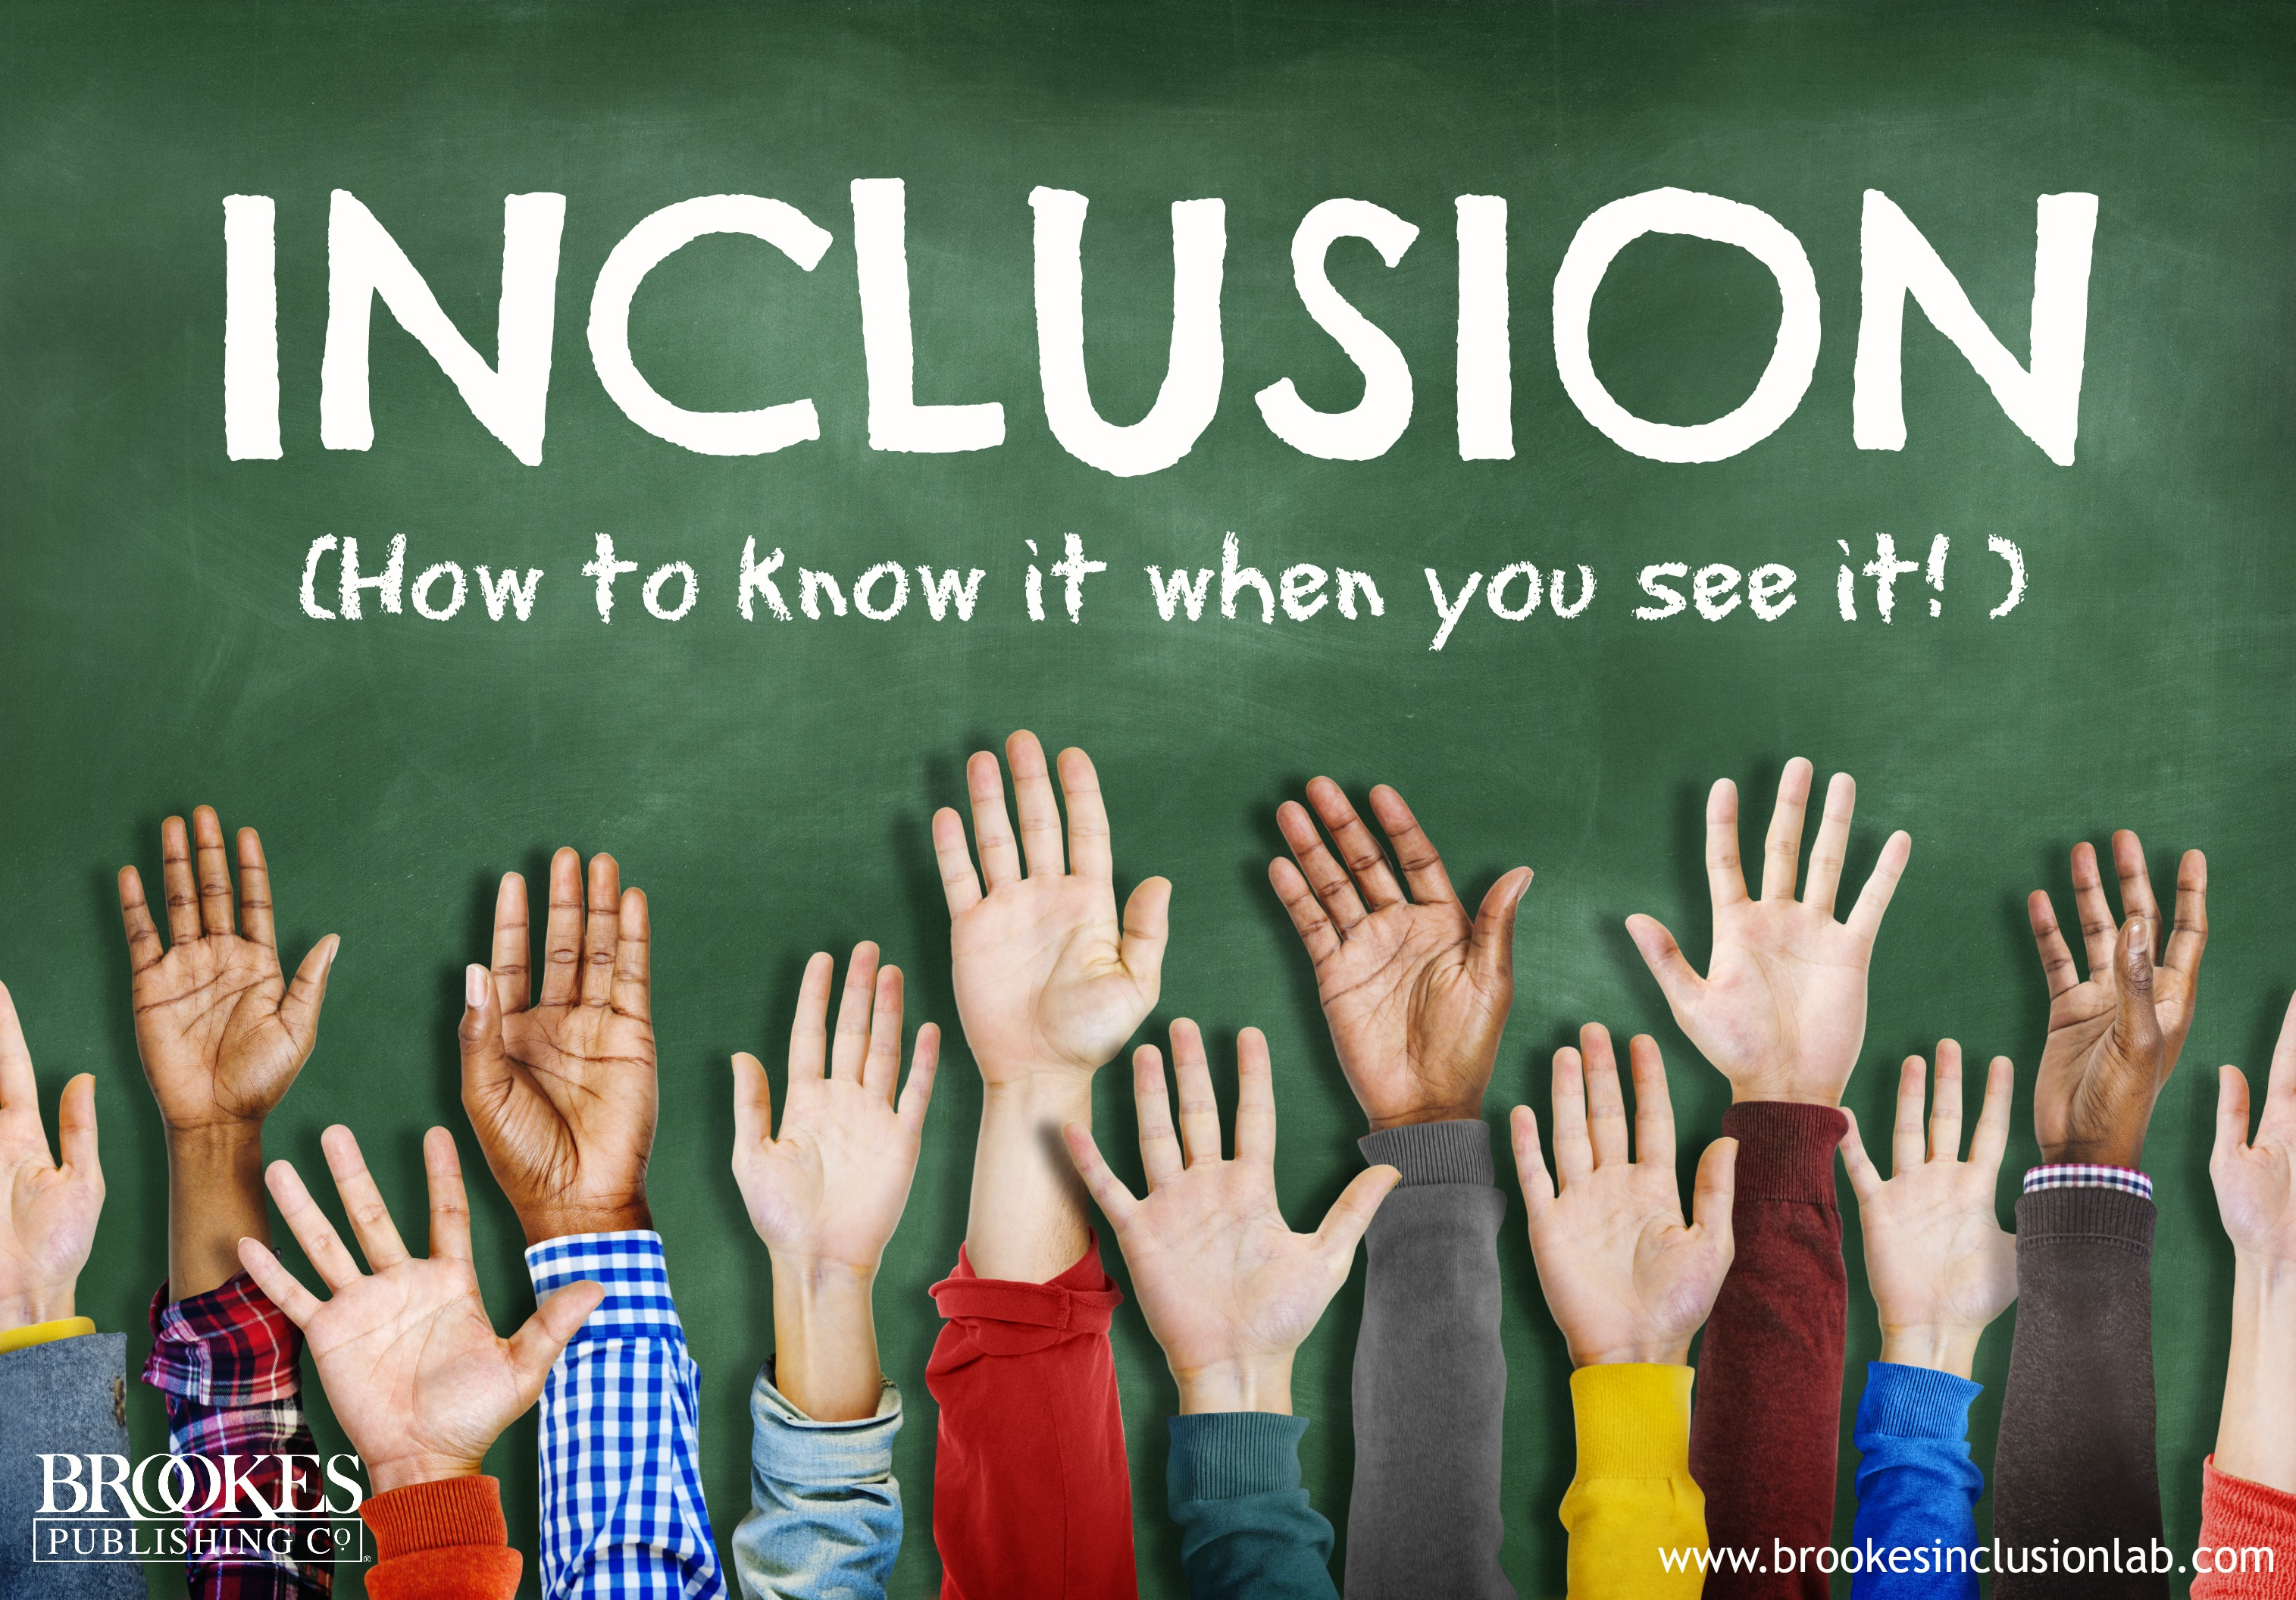 Inclusion: How to Know It When You See It